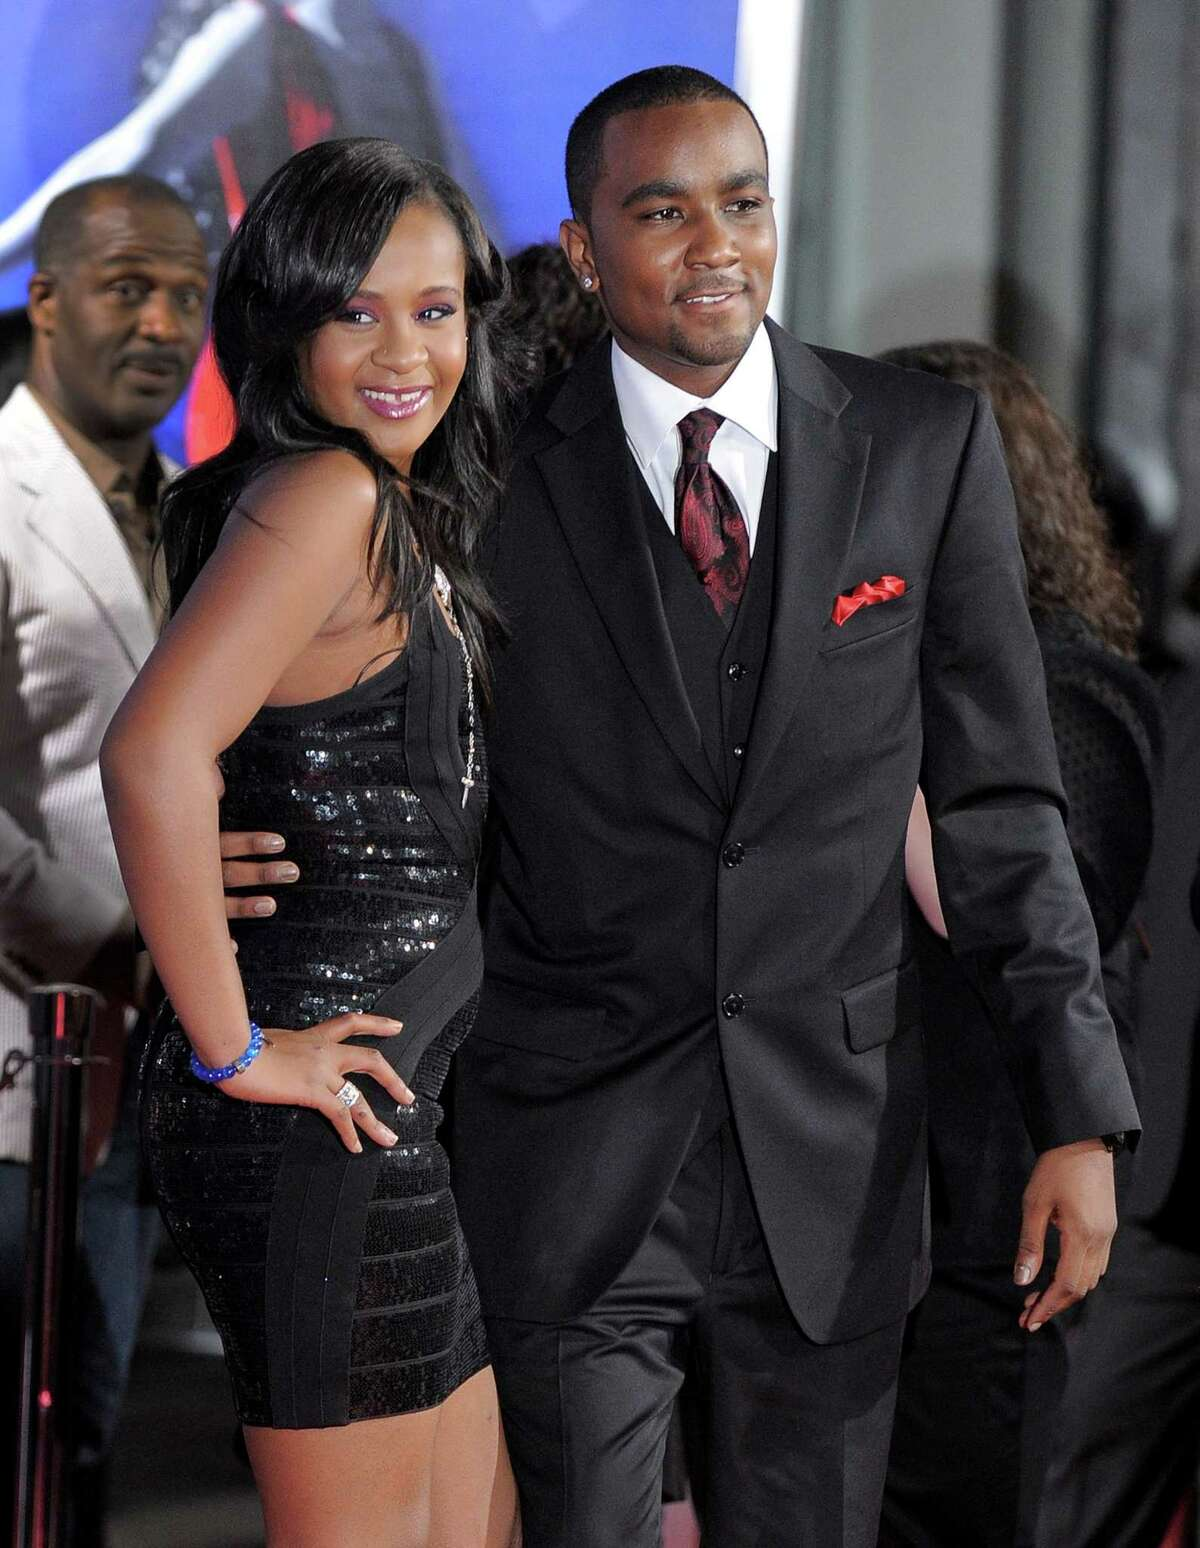 FILE - In this Aug. 16, 2012, file photo, Bobbi Kristina Brown, left, and Nick Gordon attend the Los Angeles premiere of